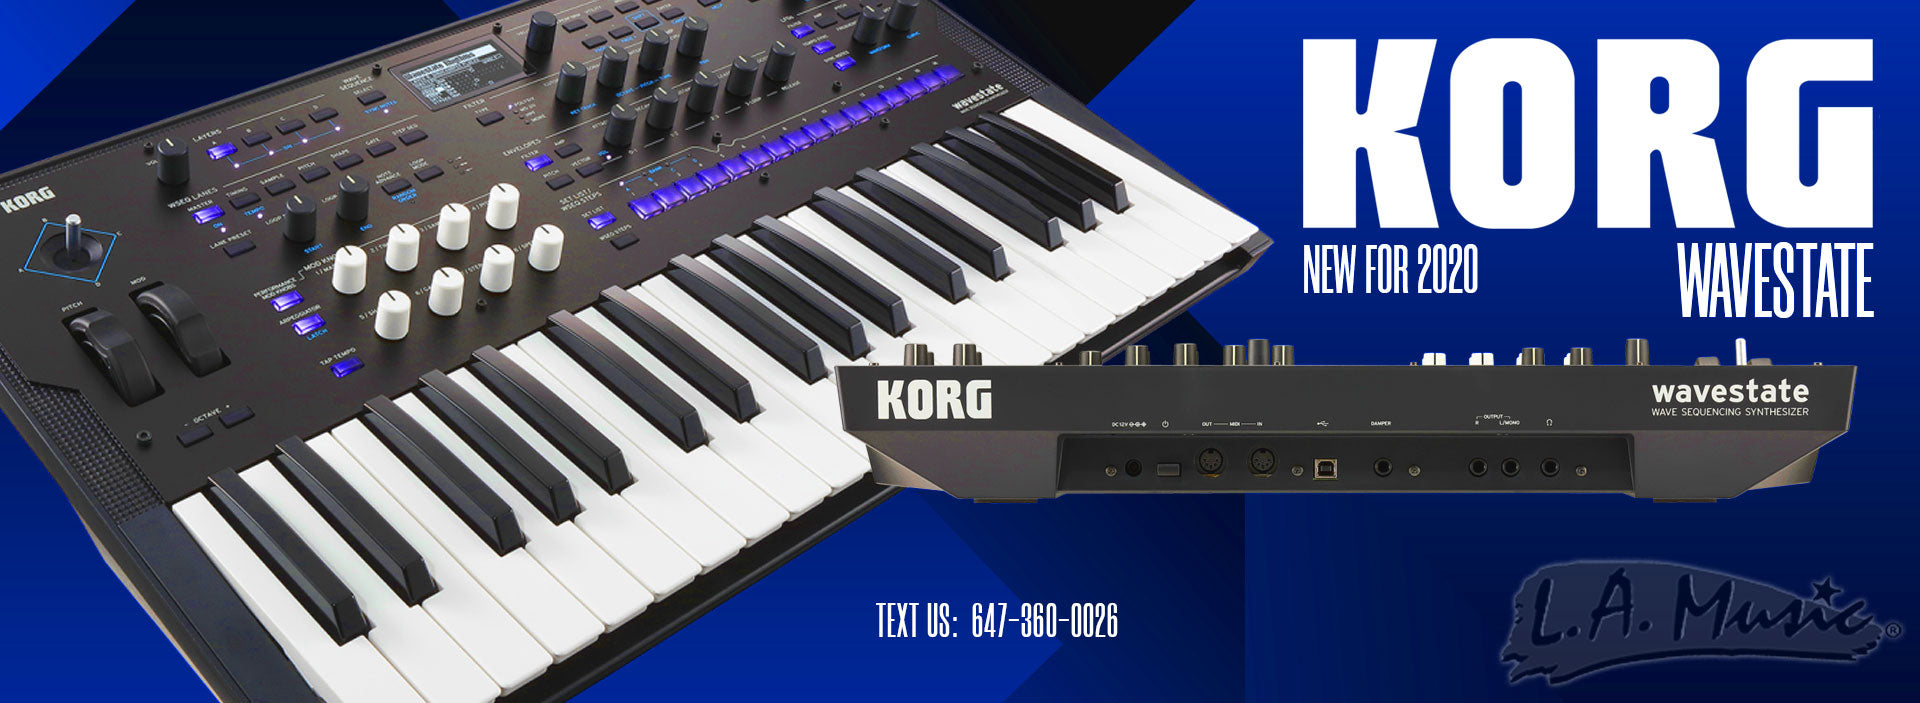 KORG WAVESTATE NEW FOR 2020